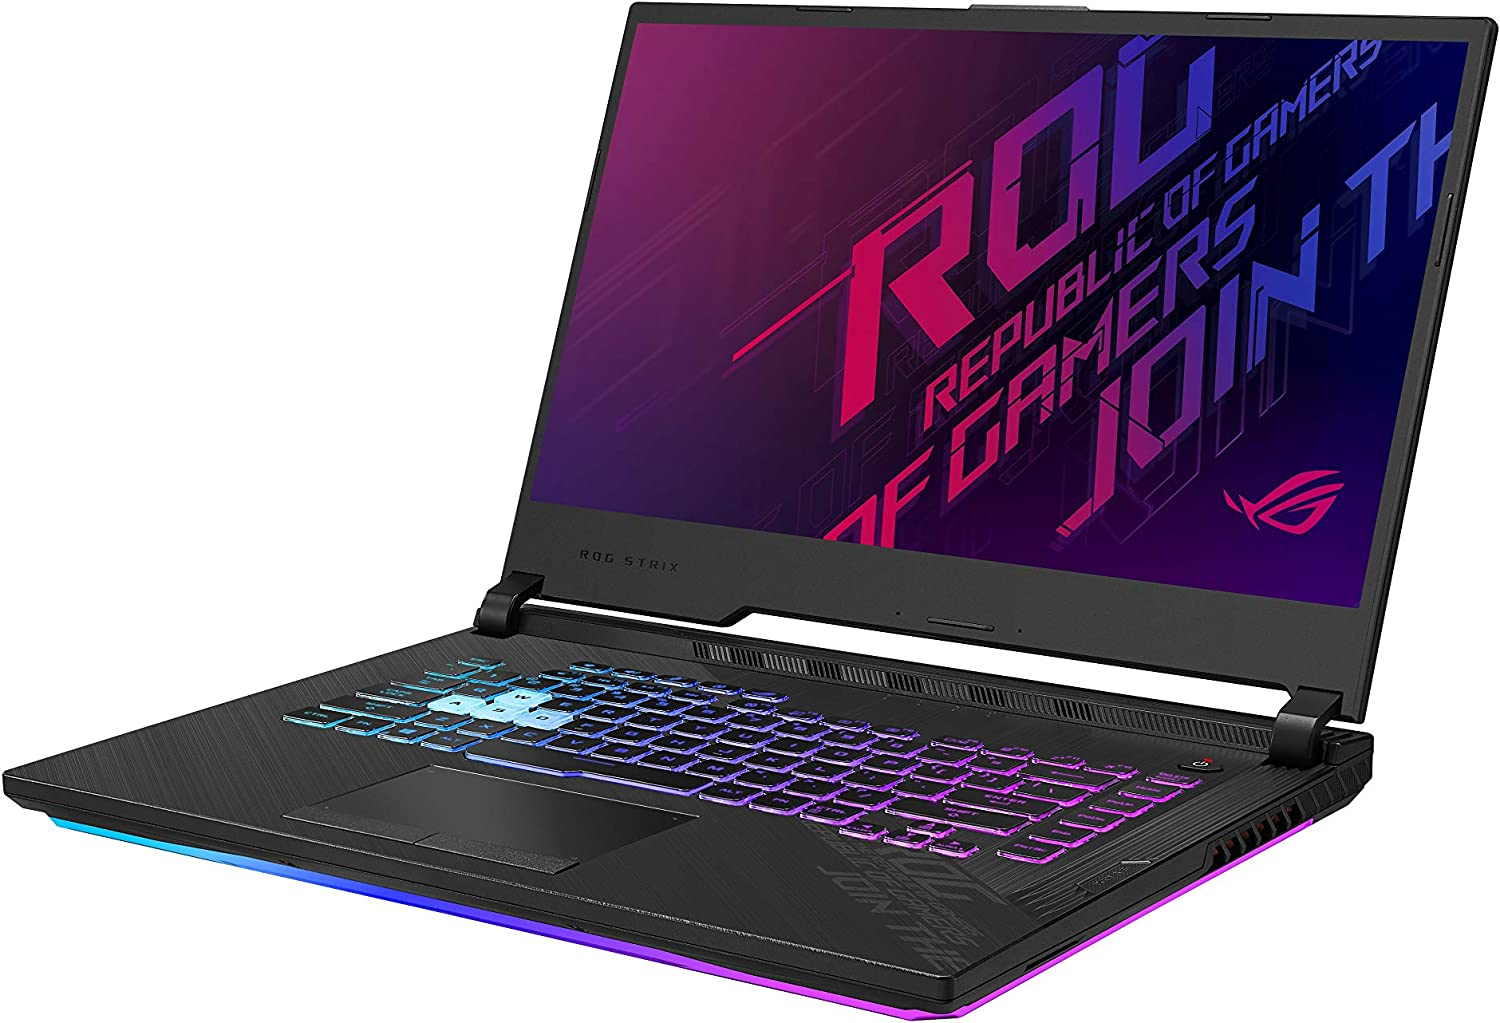 Good Gaming Laptop for Overwatch